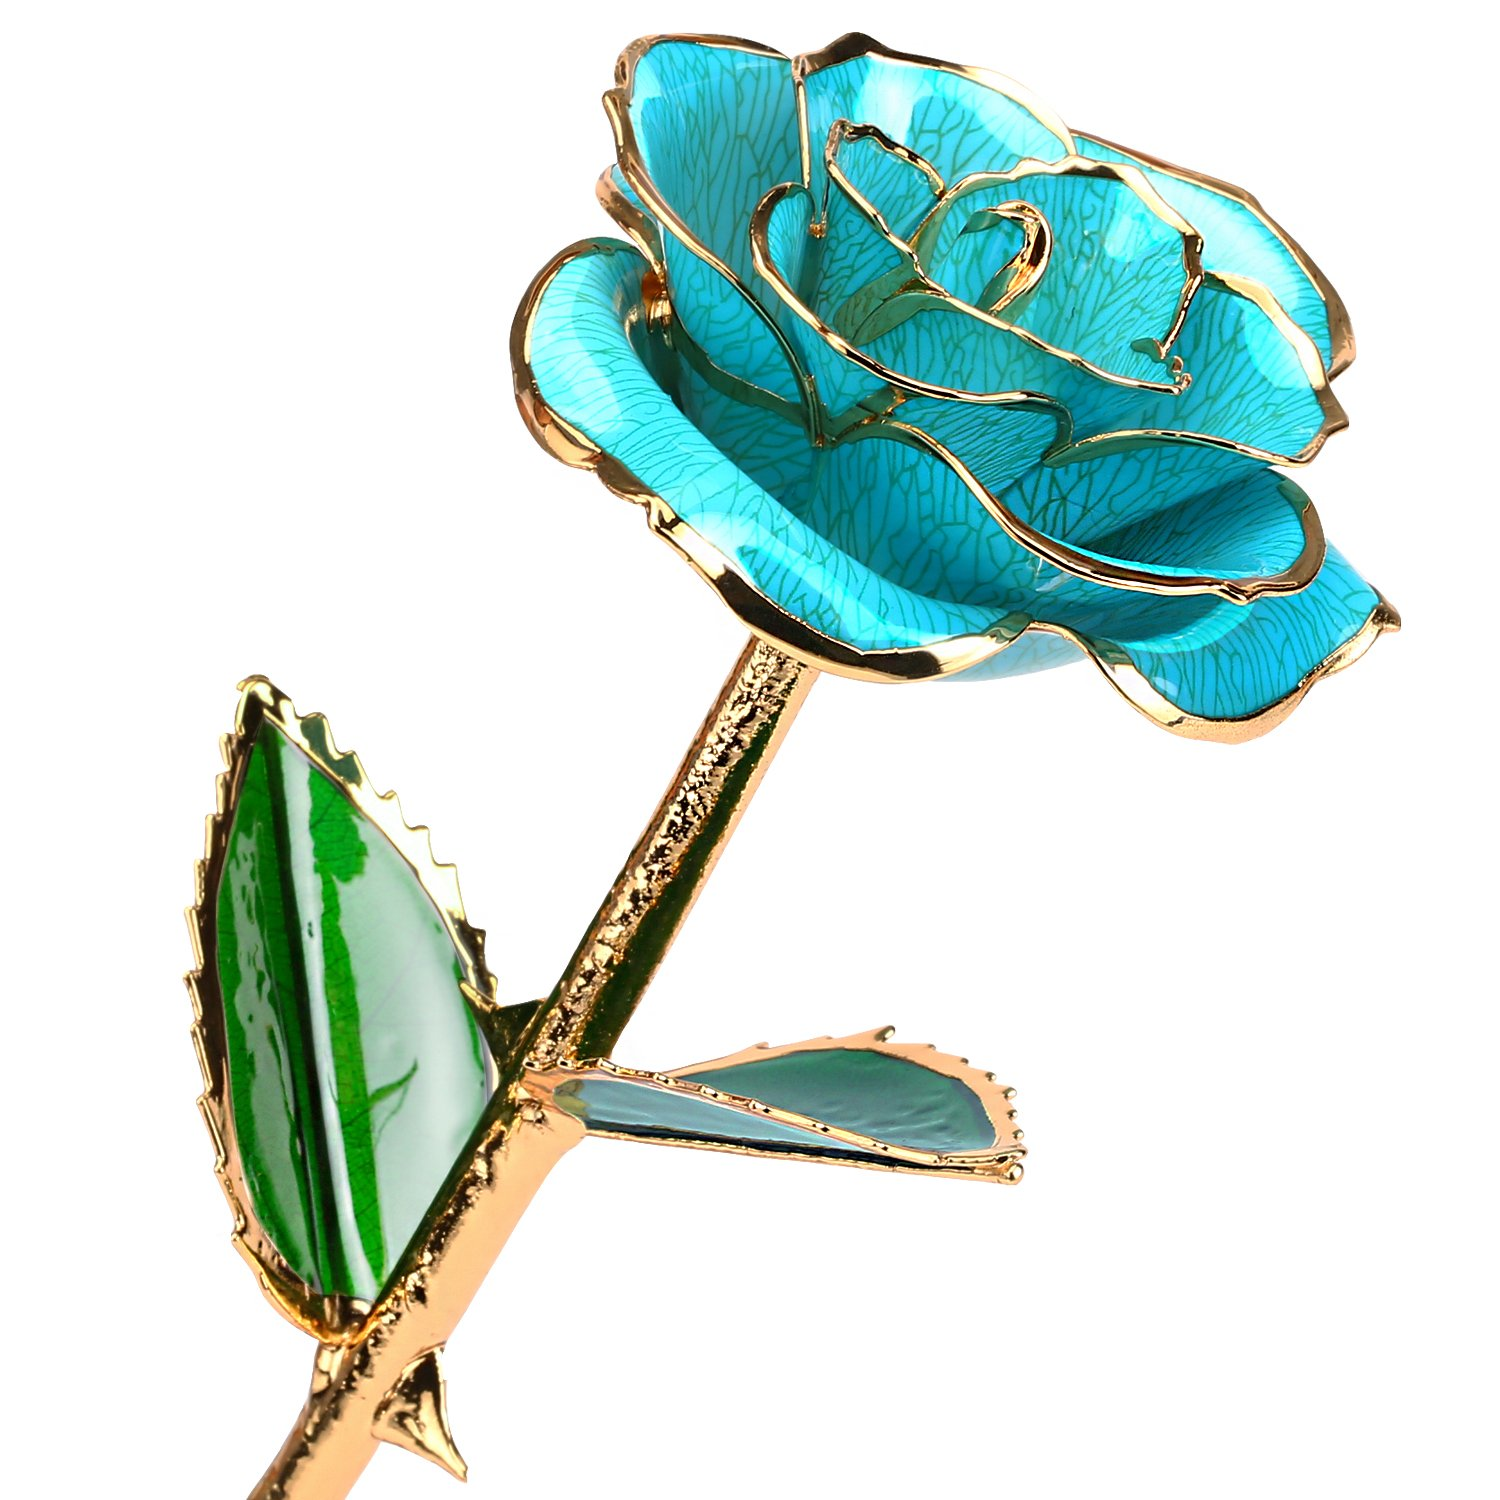 24k Gold Rose Flower with Long Stem Rose Dipped in Gold Gift for Women Girls on Birthday, Valentine's Day, Mother's Day, Christmas (Light Blue)